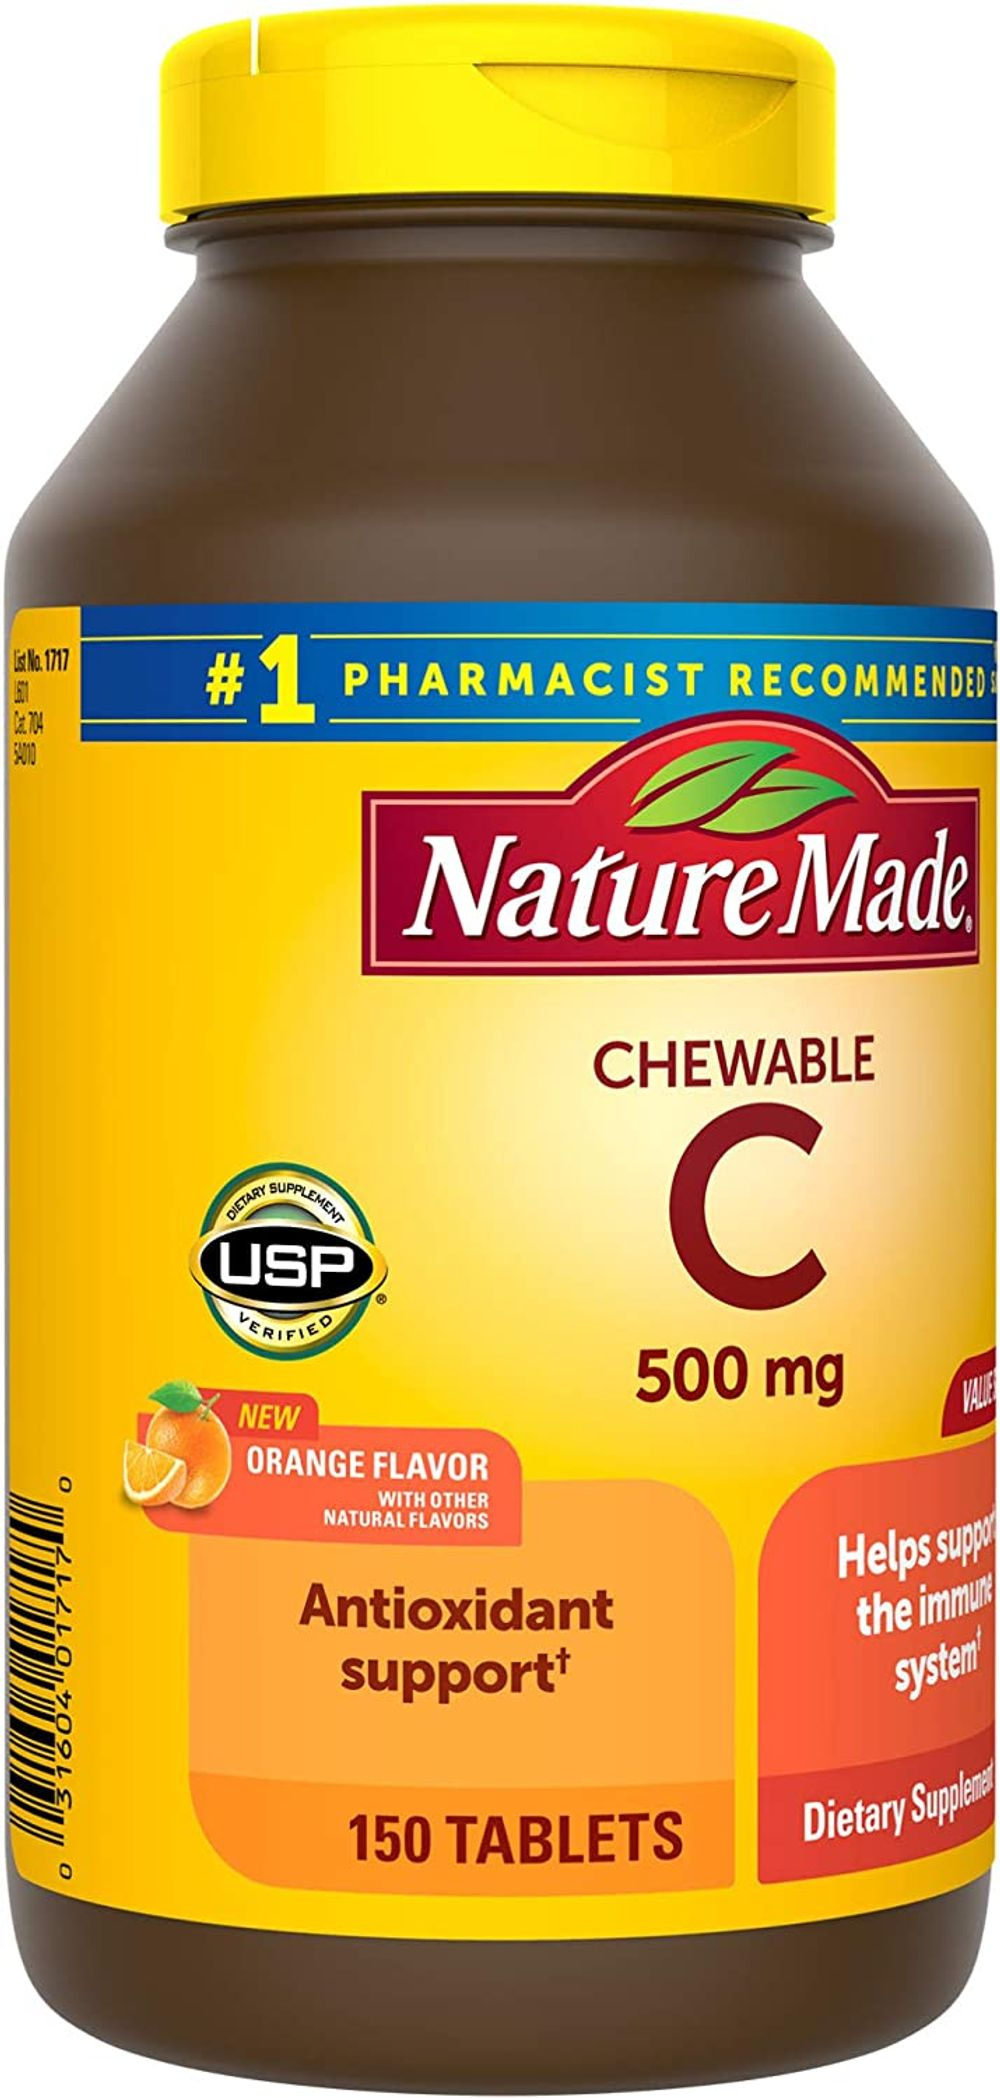 Nature Made Chewable Vitamin C 500 mg Tablets, 150 Count Value Size